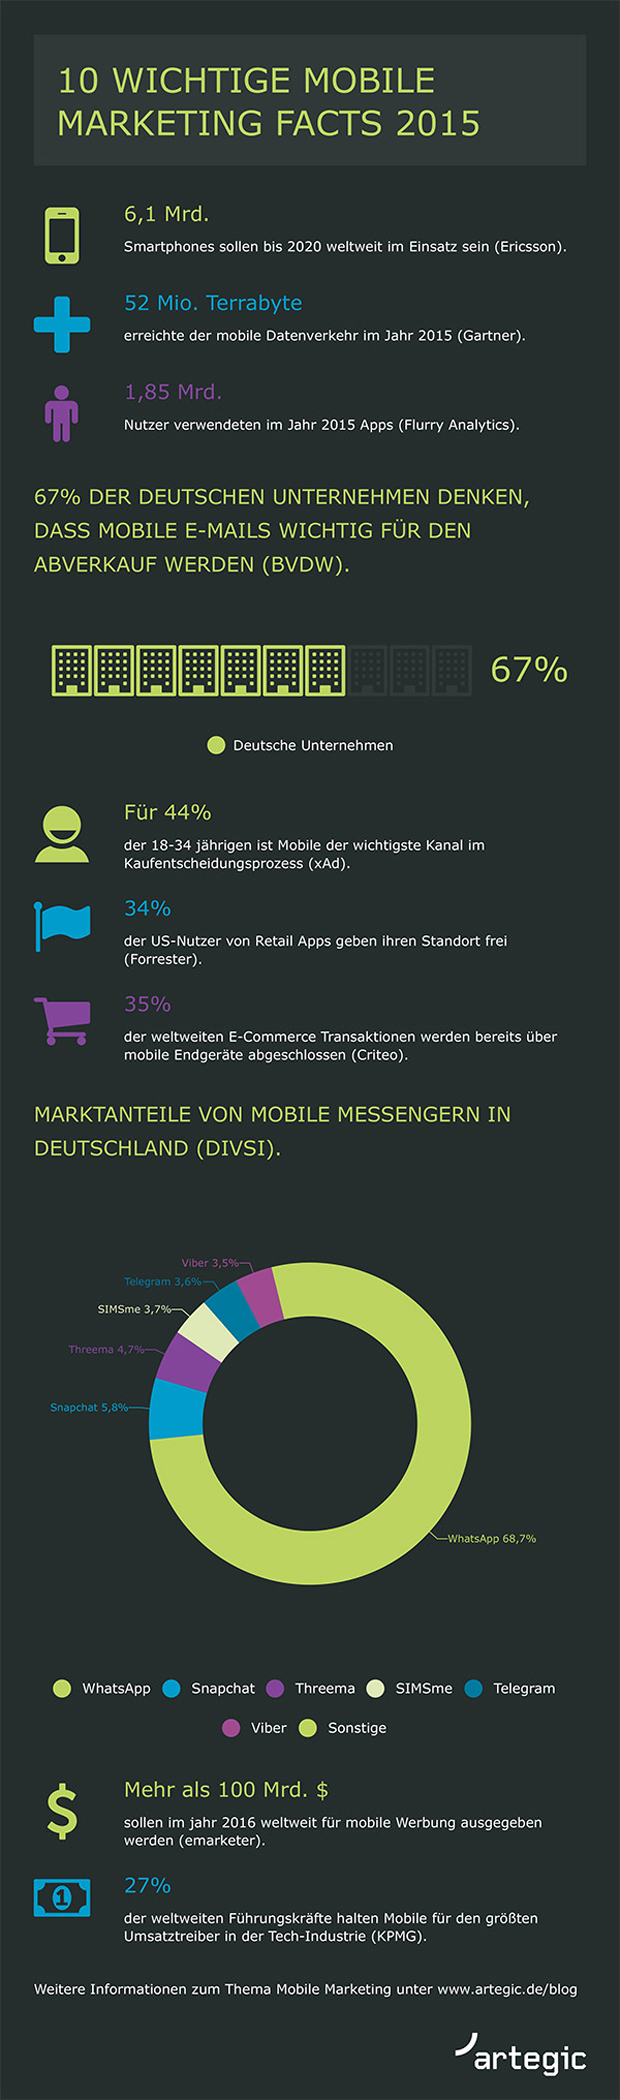 Mobile Marketing Facts 2015